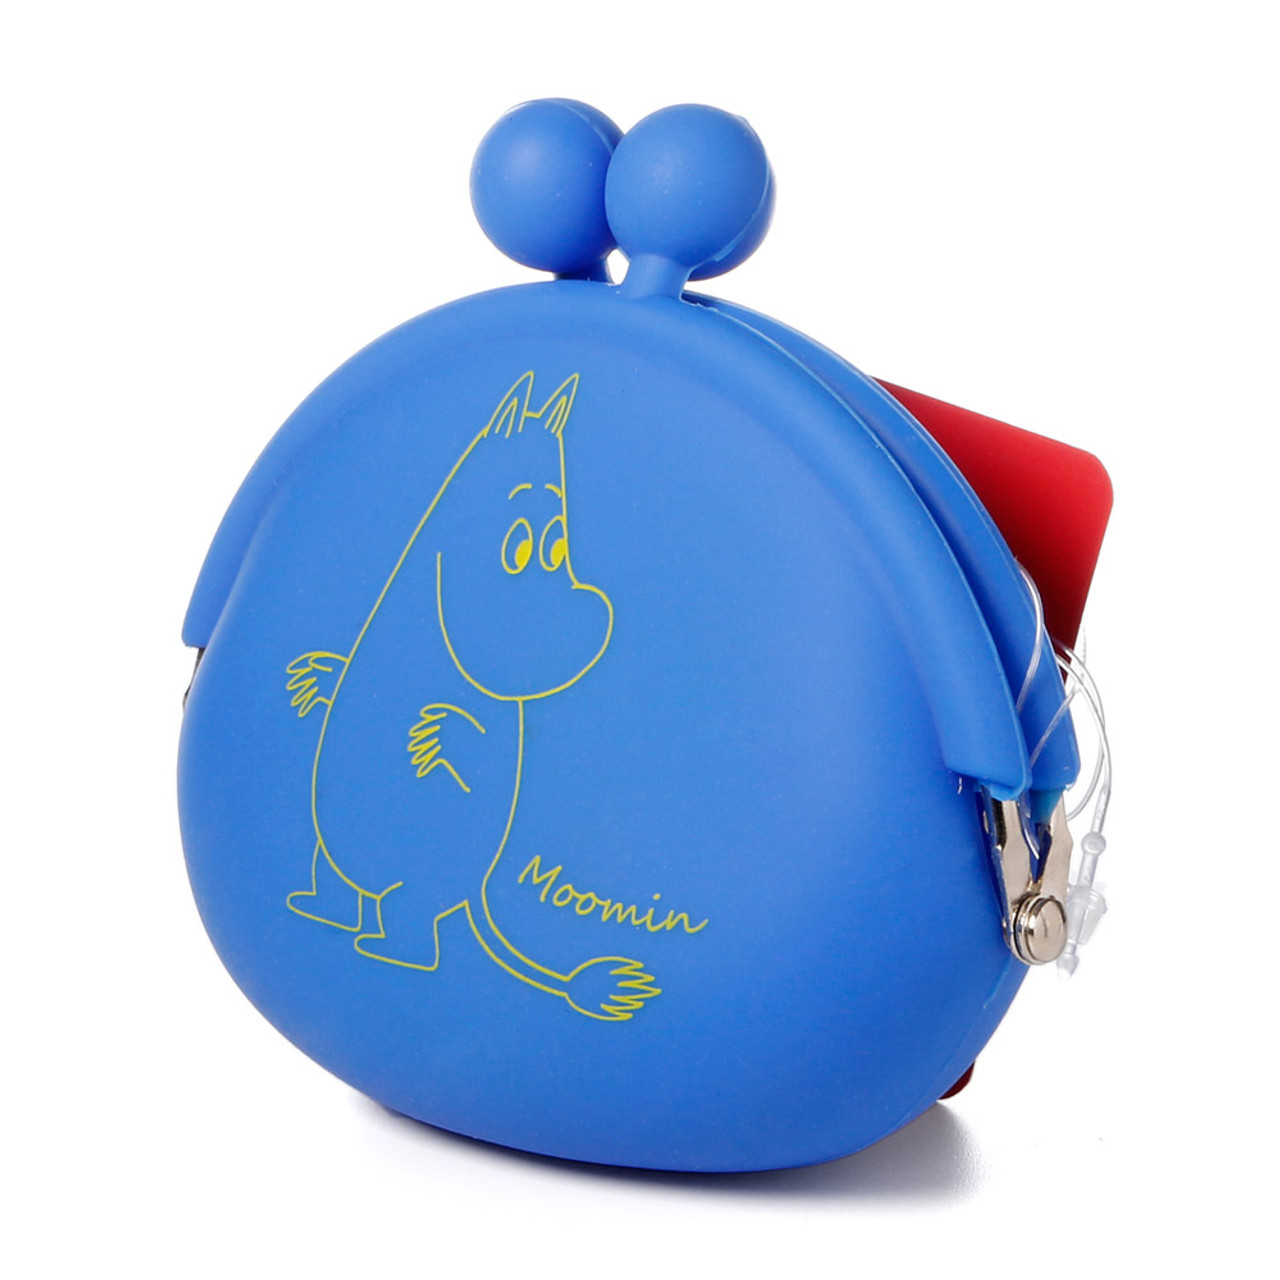 Moomin Valley Moomintroll Blue Silicone Ball Clasp Frame Coins Wallet ( Side View )